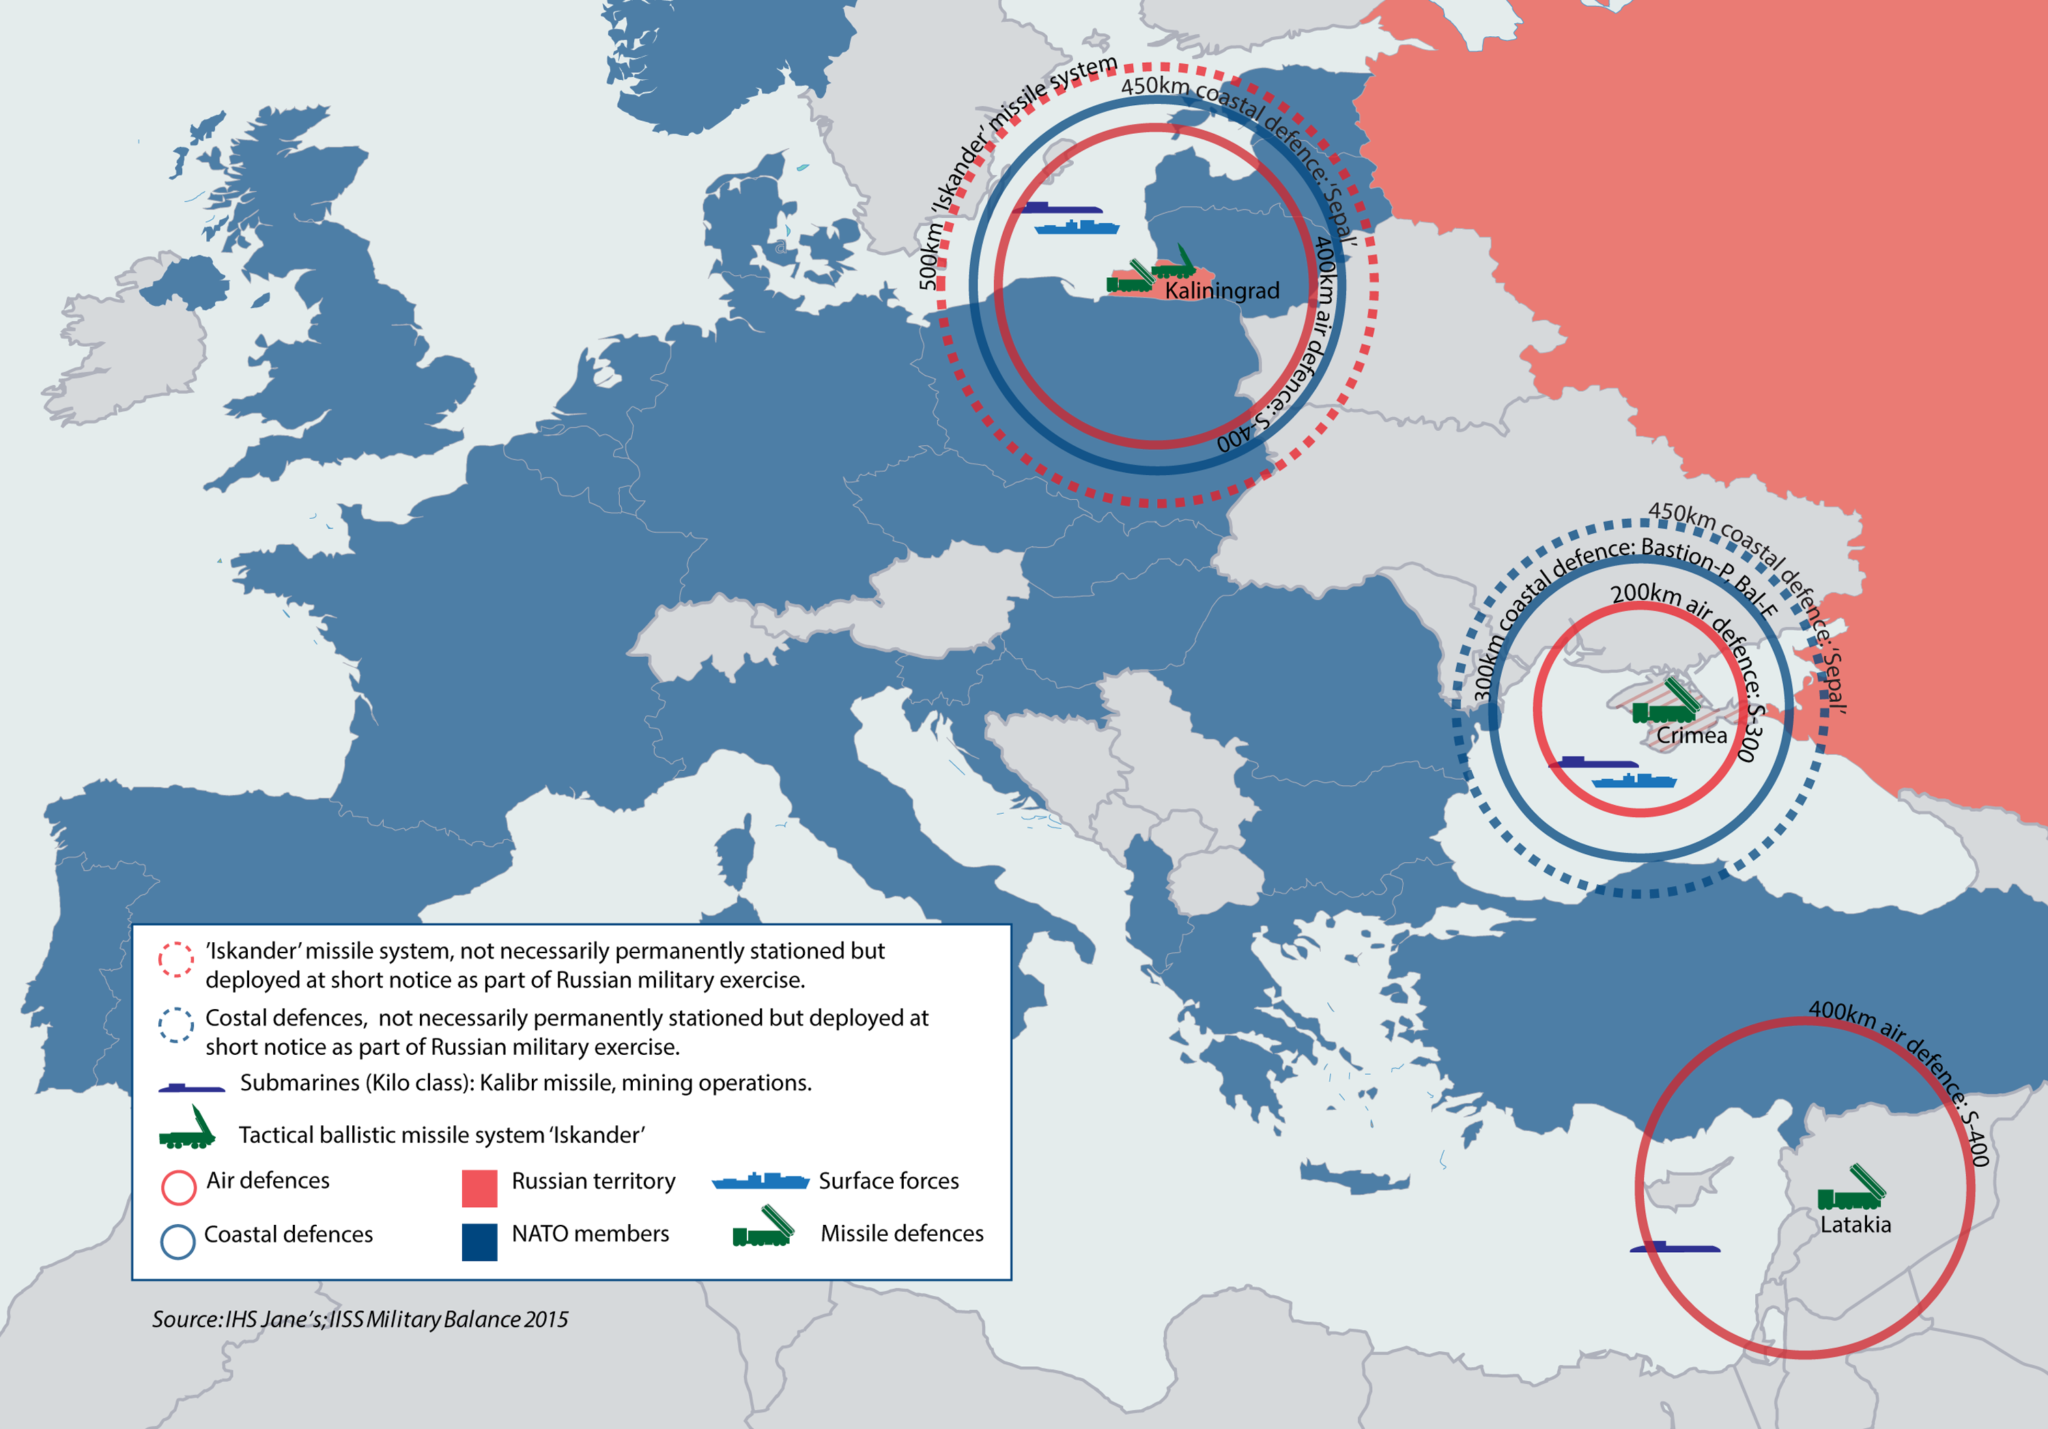 Russian A2/AD Bubbles in Europe and the Mediterranean (IHS Jane's 2015)